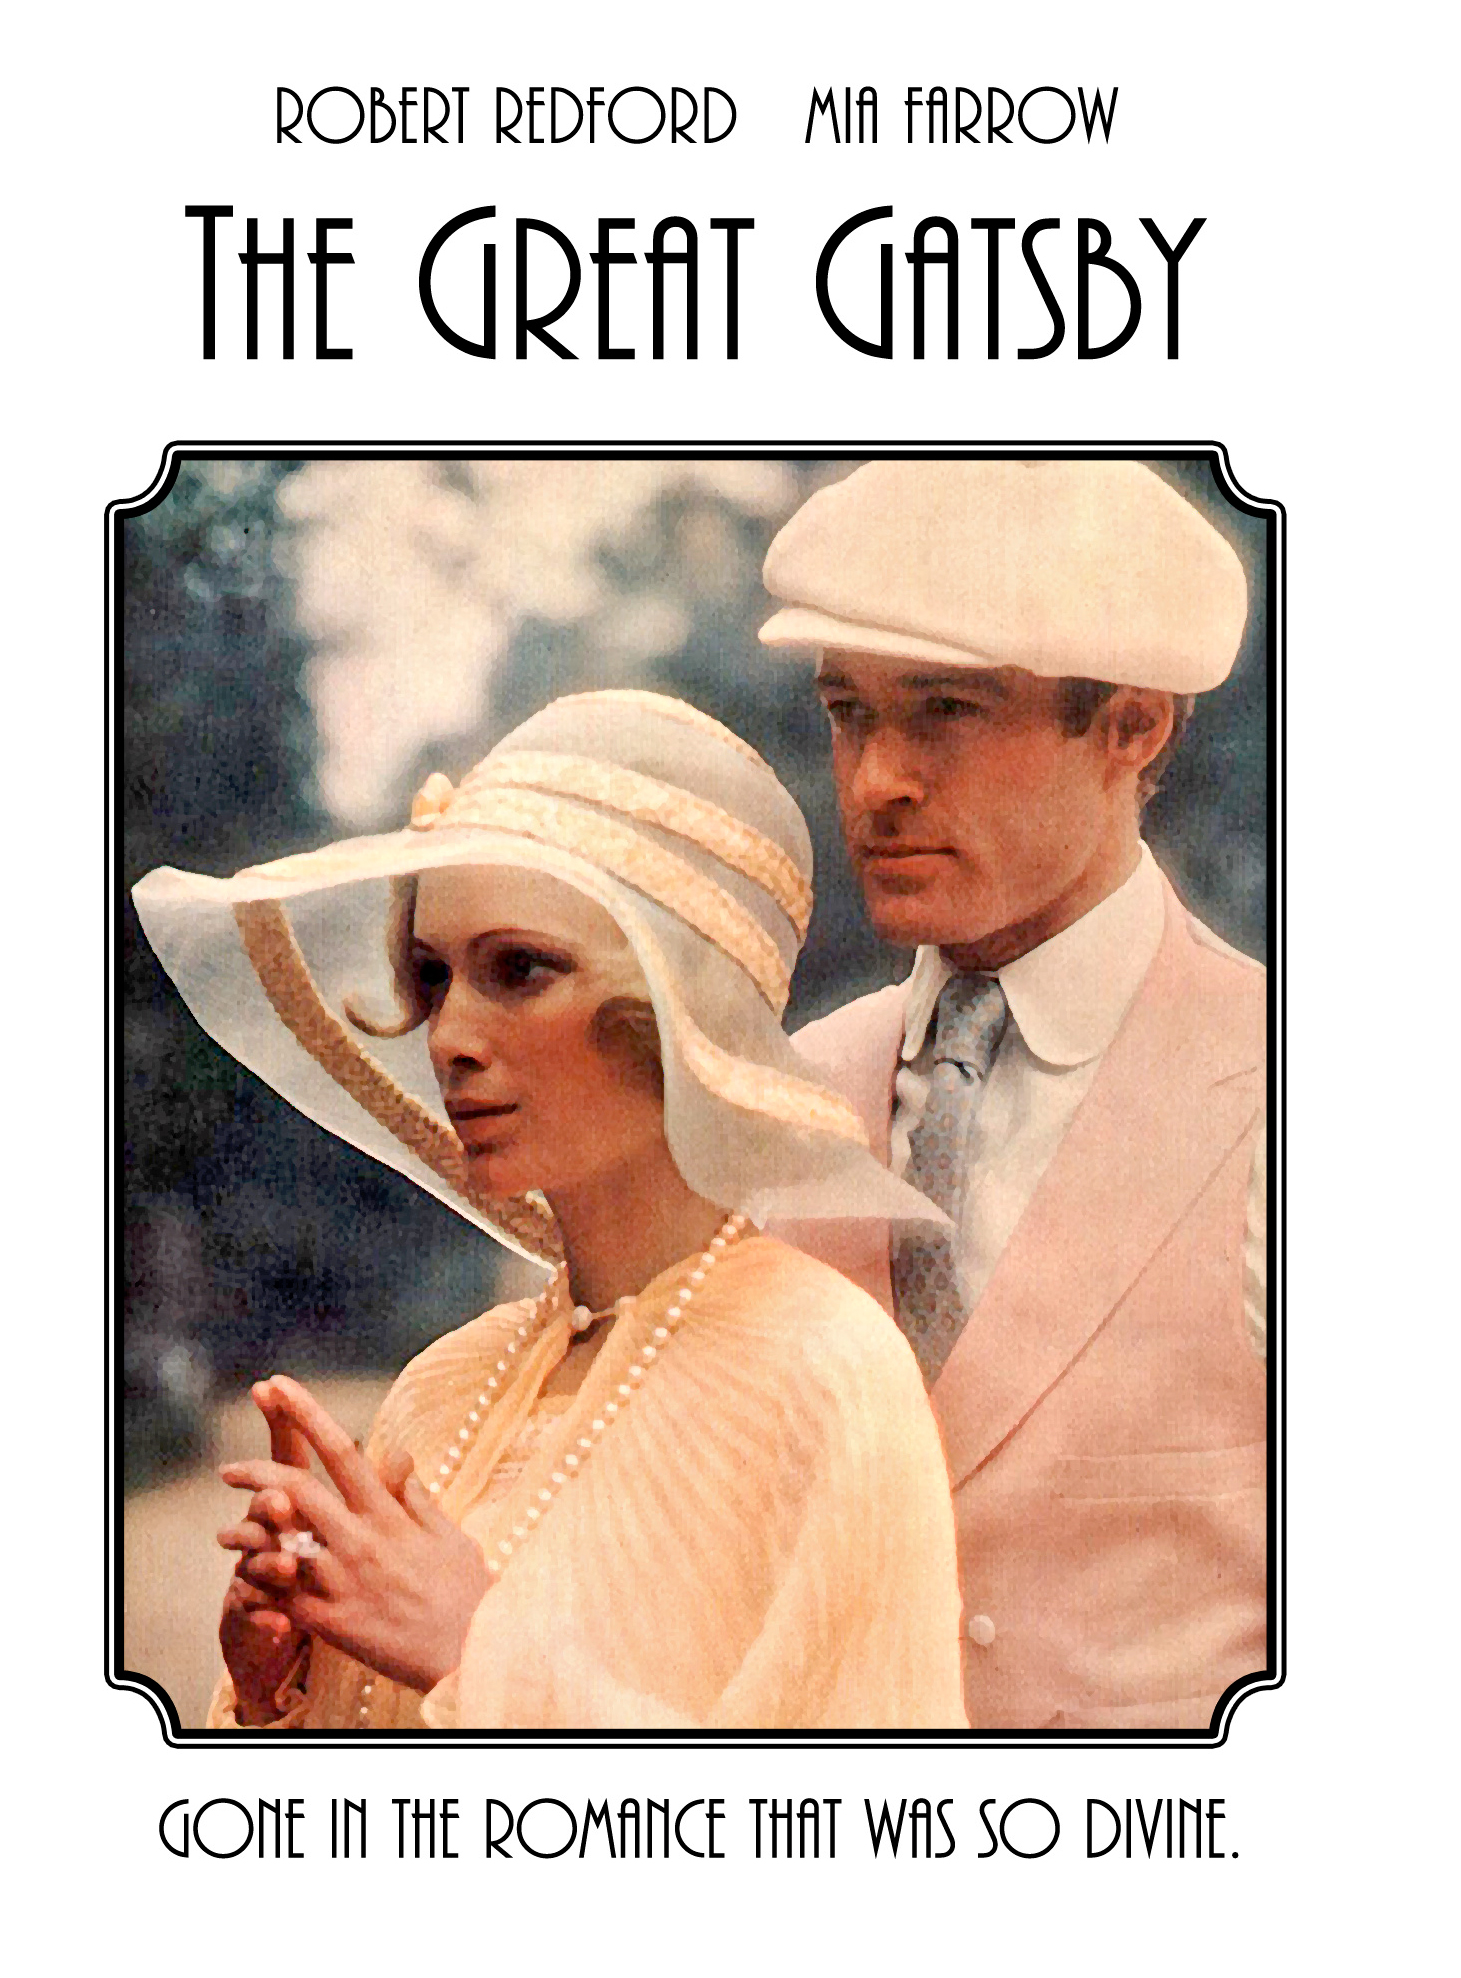 an analysis of the 1974 film the great gatsby and its comparison to the novel by f scott fitzgerald You're going to hear a whole bunch of gripes about the great gatsby movie gatsby' book to movie: 5 key differences f scott fitzgerald novel.